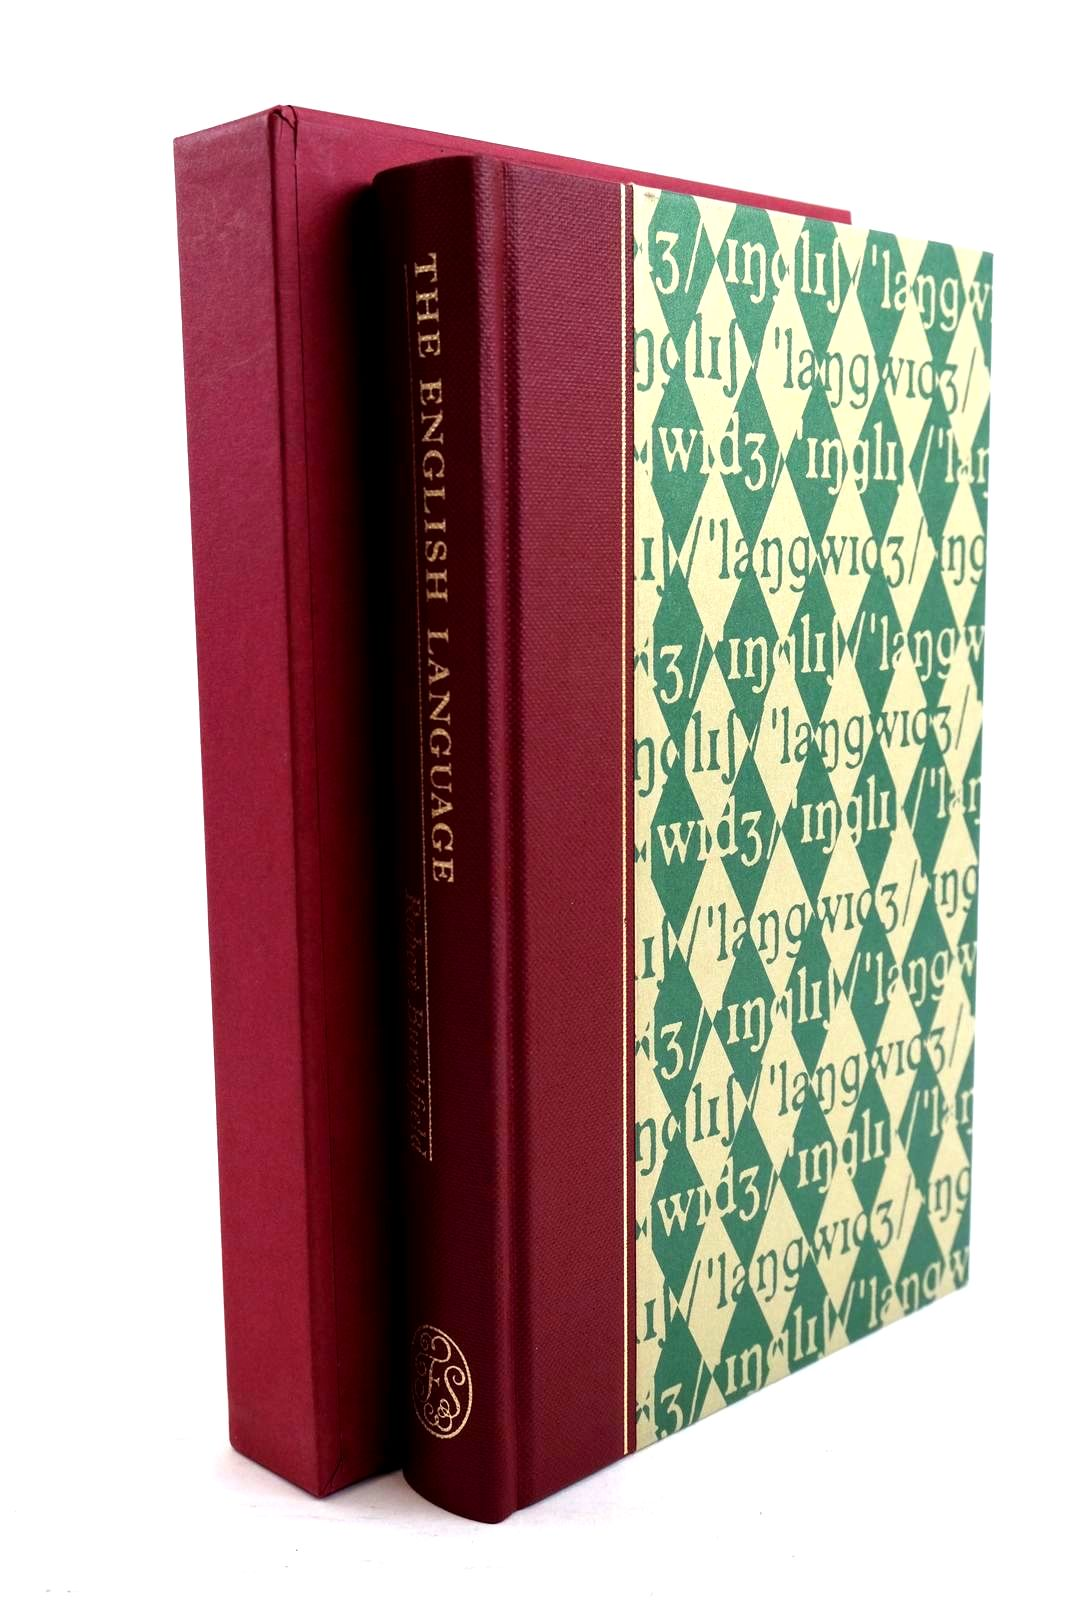 Photo of THE ENGLISH LANGUAGE written by Burchfield, Robert McCrum, Robert Simpson, John published by Folio Society (STOCK CODE: 1320661)  for sale by Stella & Rose's Books